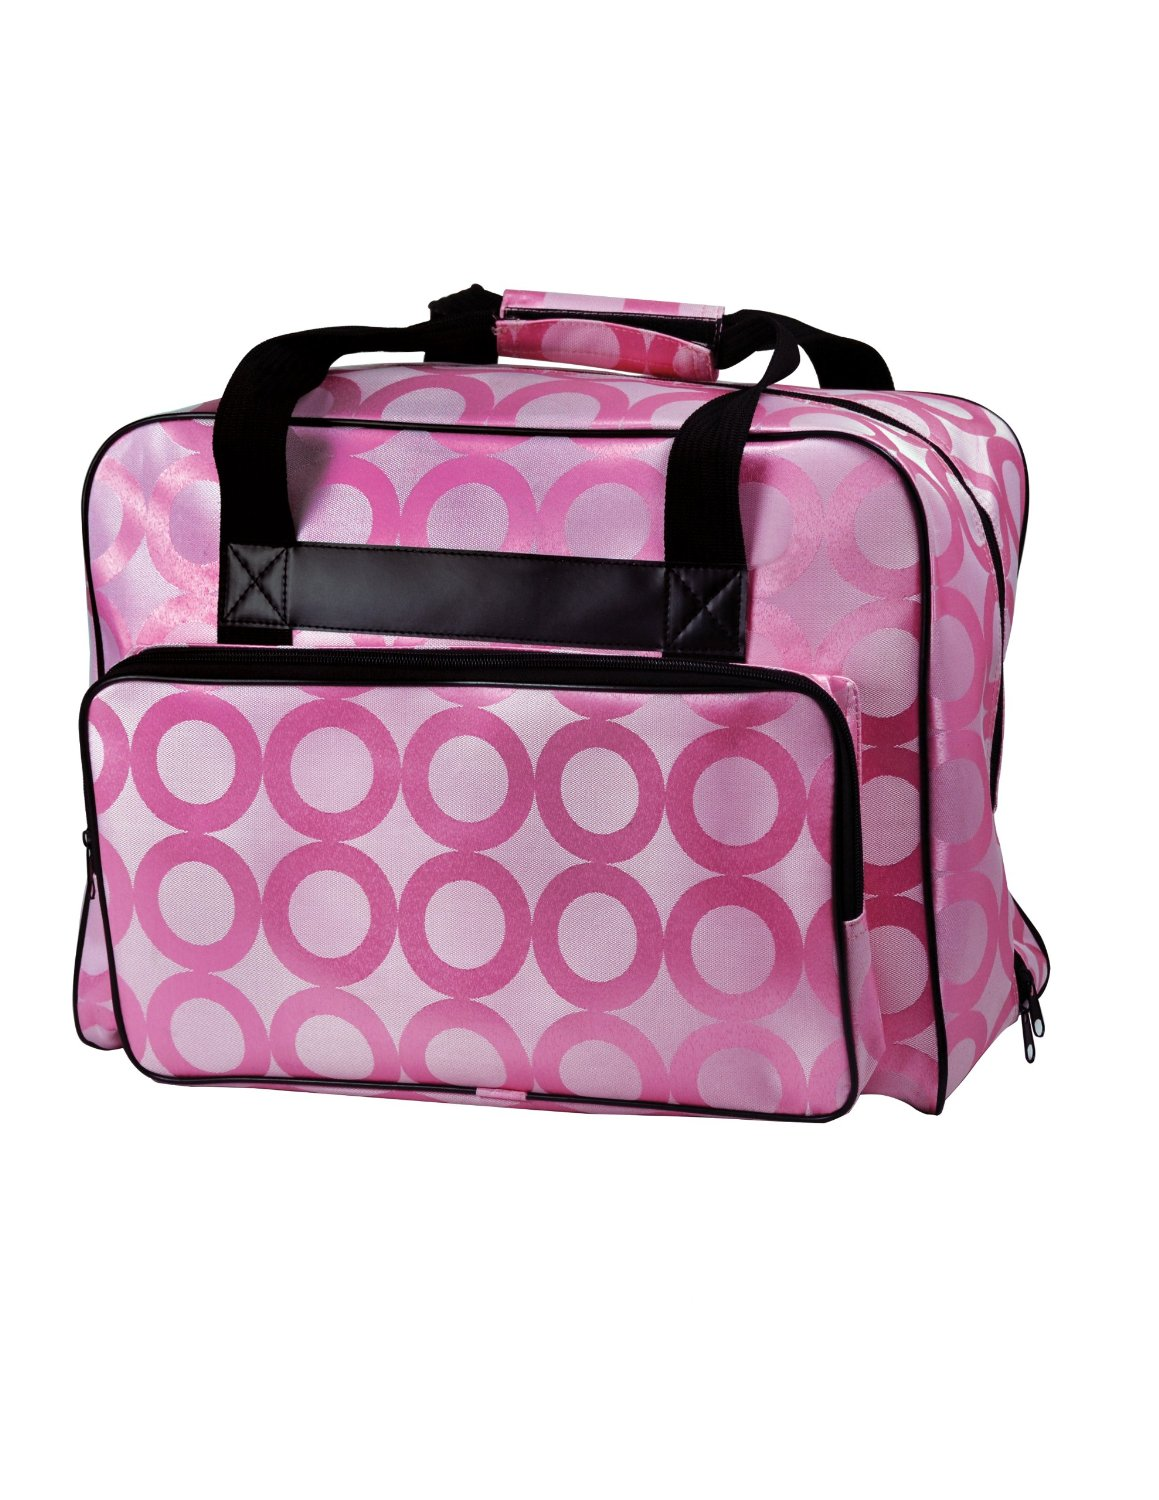 Janome Pink Sewing Machine Tote Bag